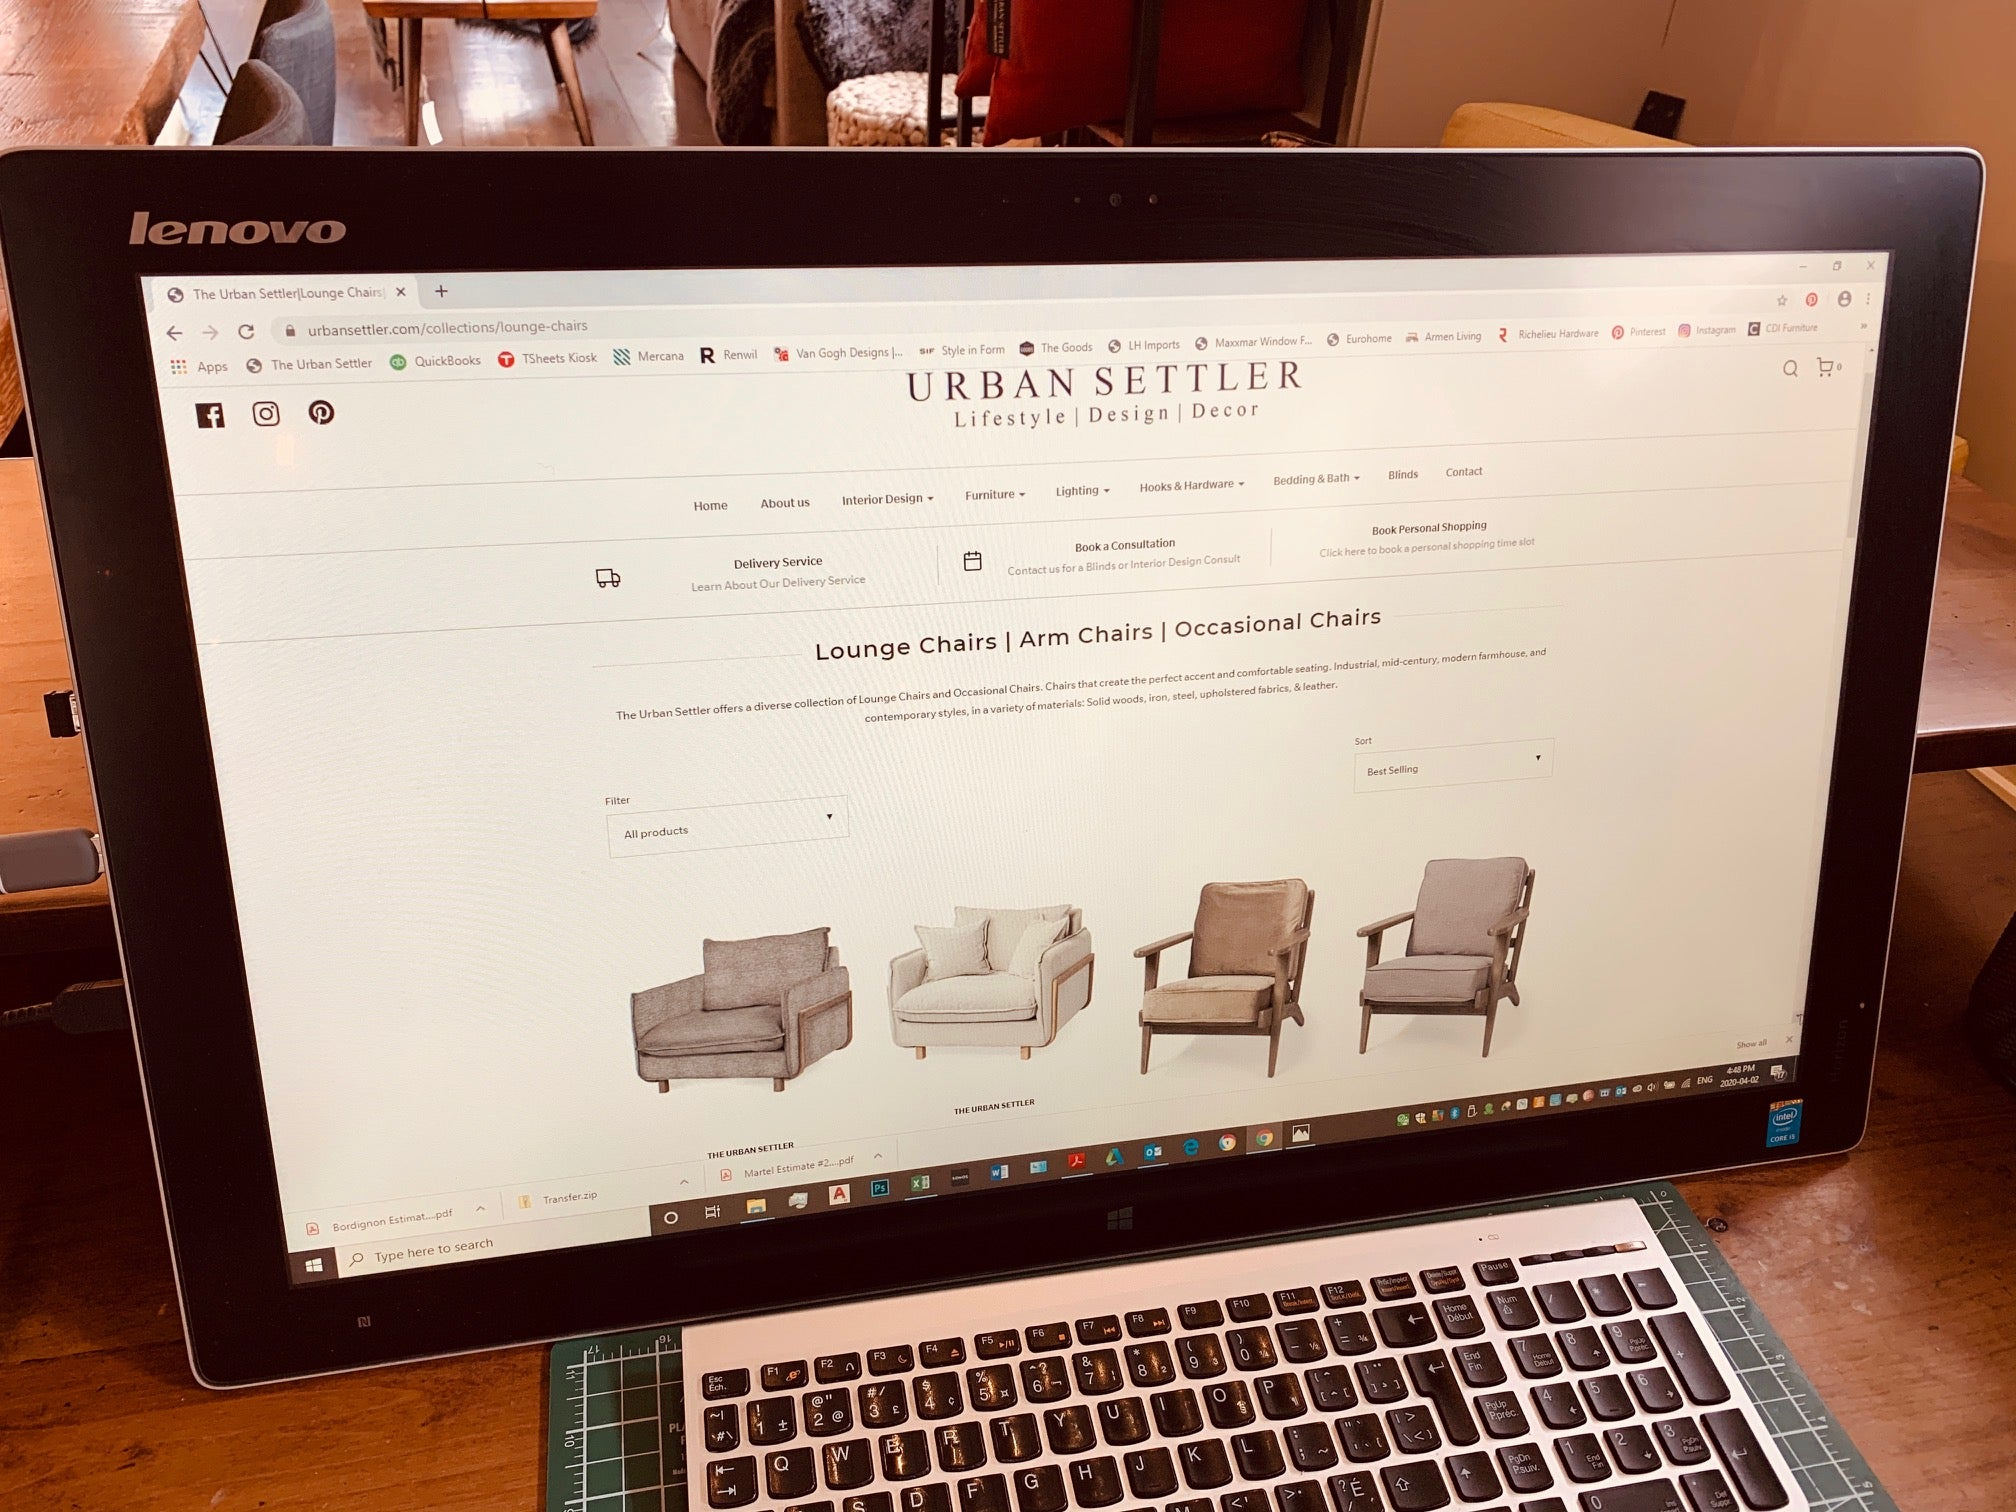 The Urban Settler furniture and interior company from Fernie Elk Valley BC Website page Lounge Chairs | Arm Chairs | Occasional Chairs shown on a computer screen.